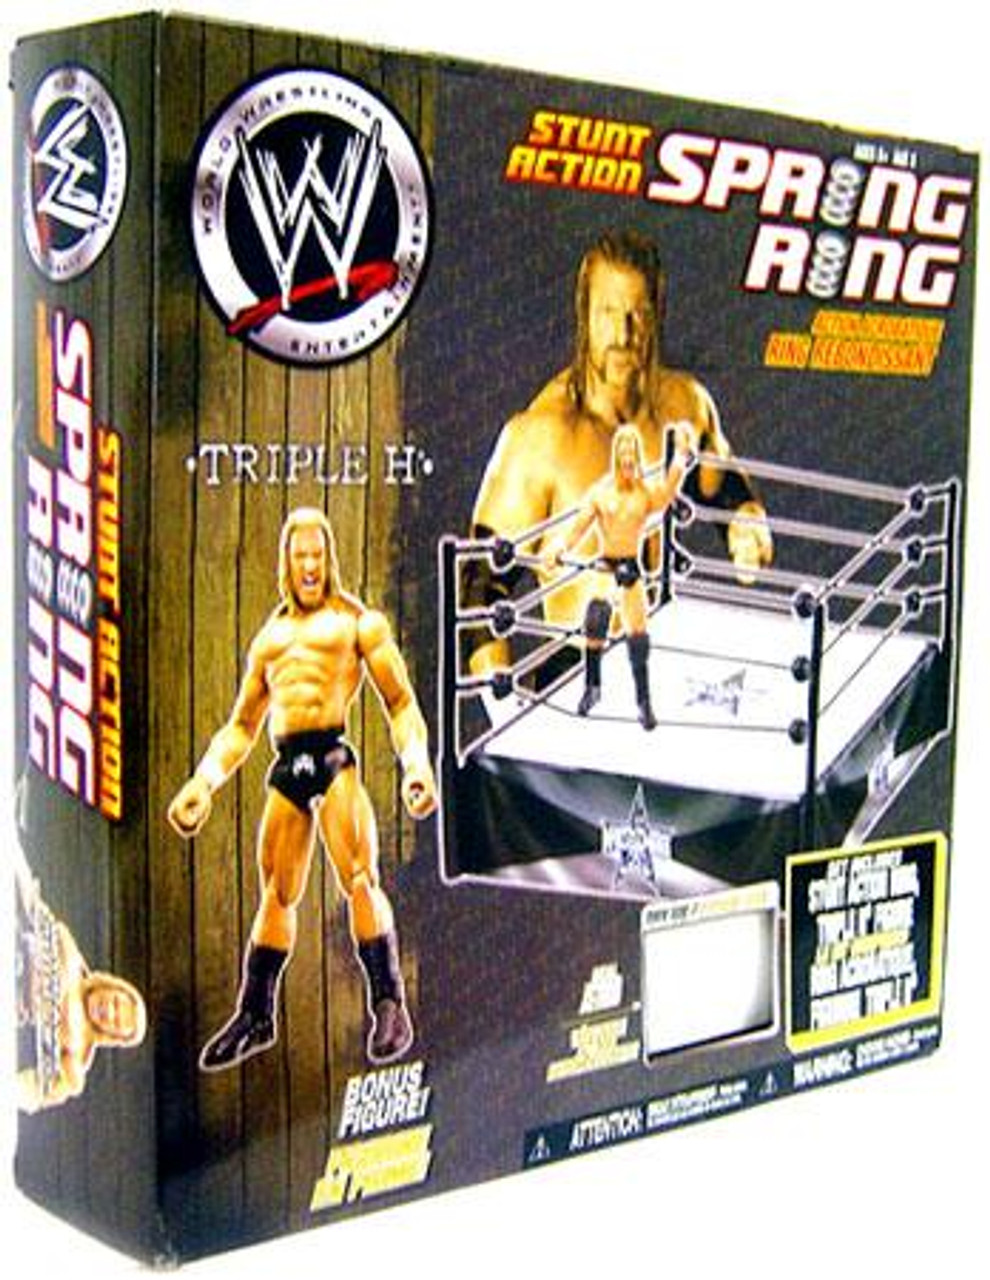 WWE Wrestling Playsets Stunt Action Spring Ring Action Figure Playset